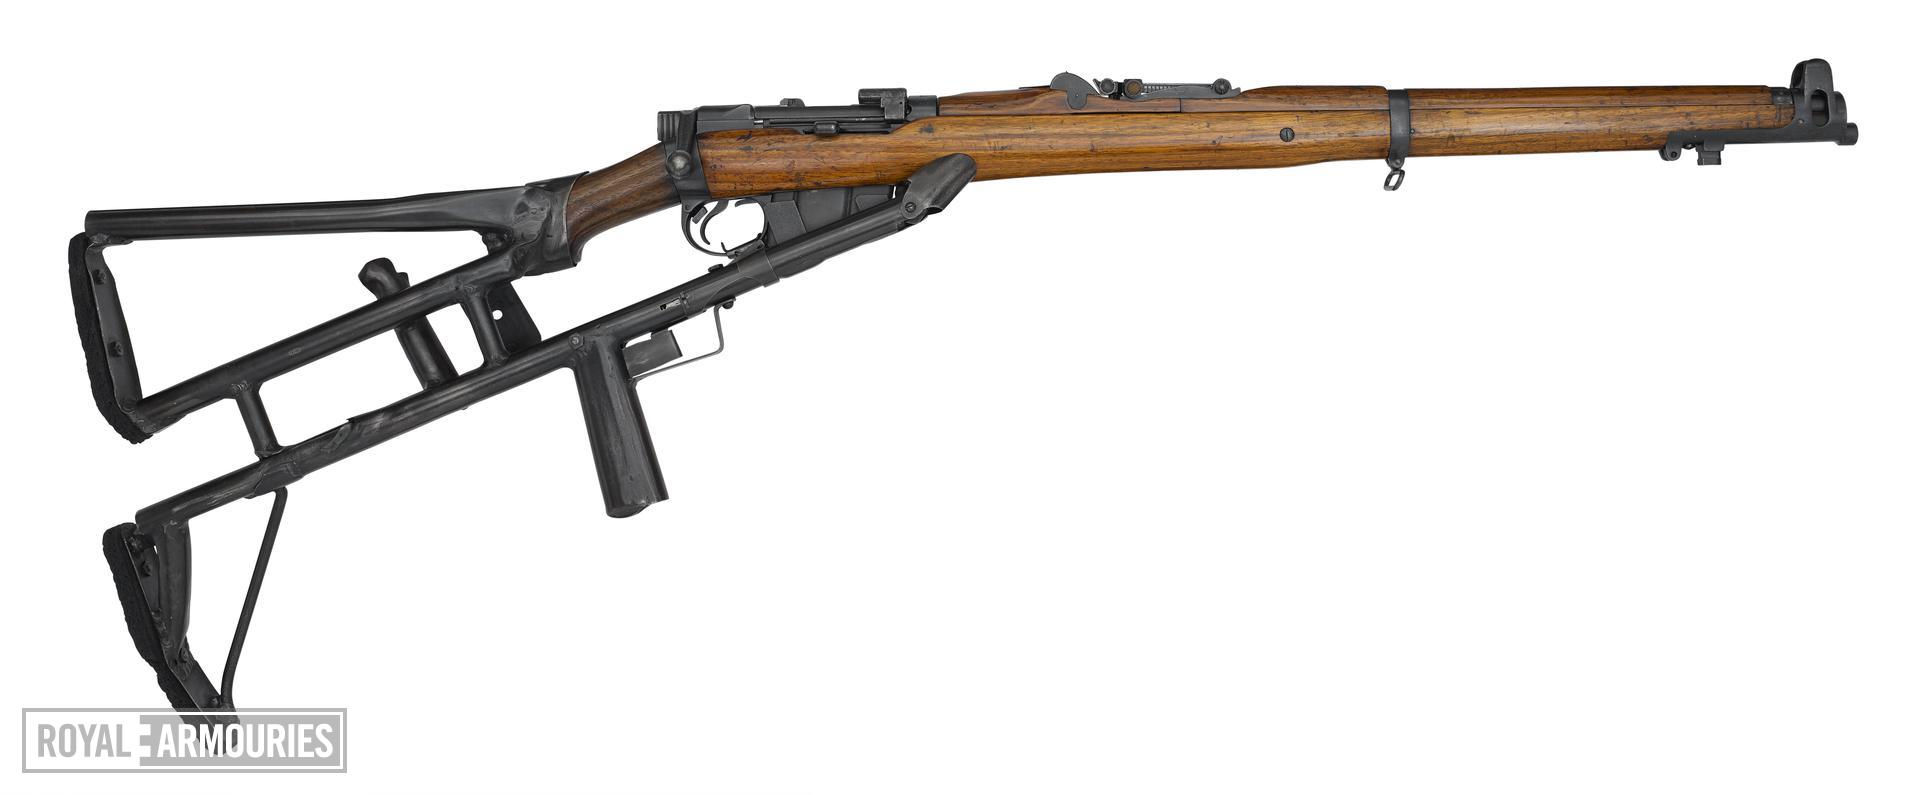 Centrefire bolt-action rifle - SMLE Mk.III